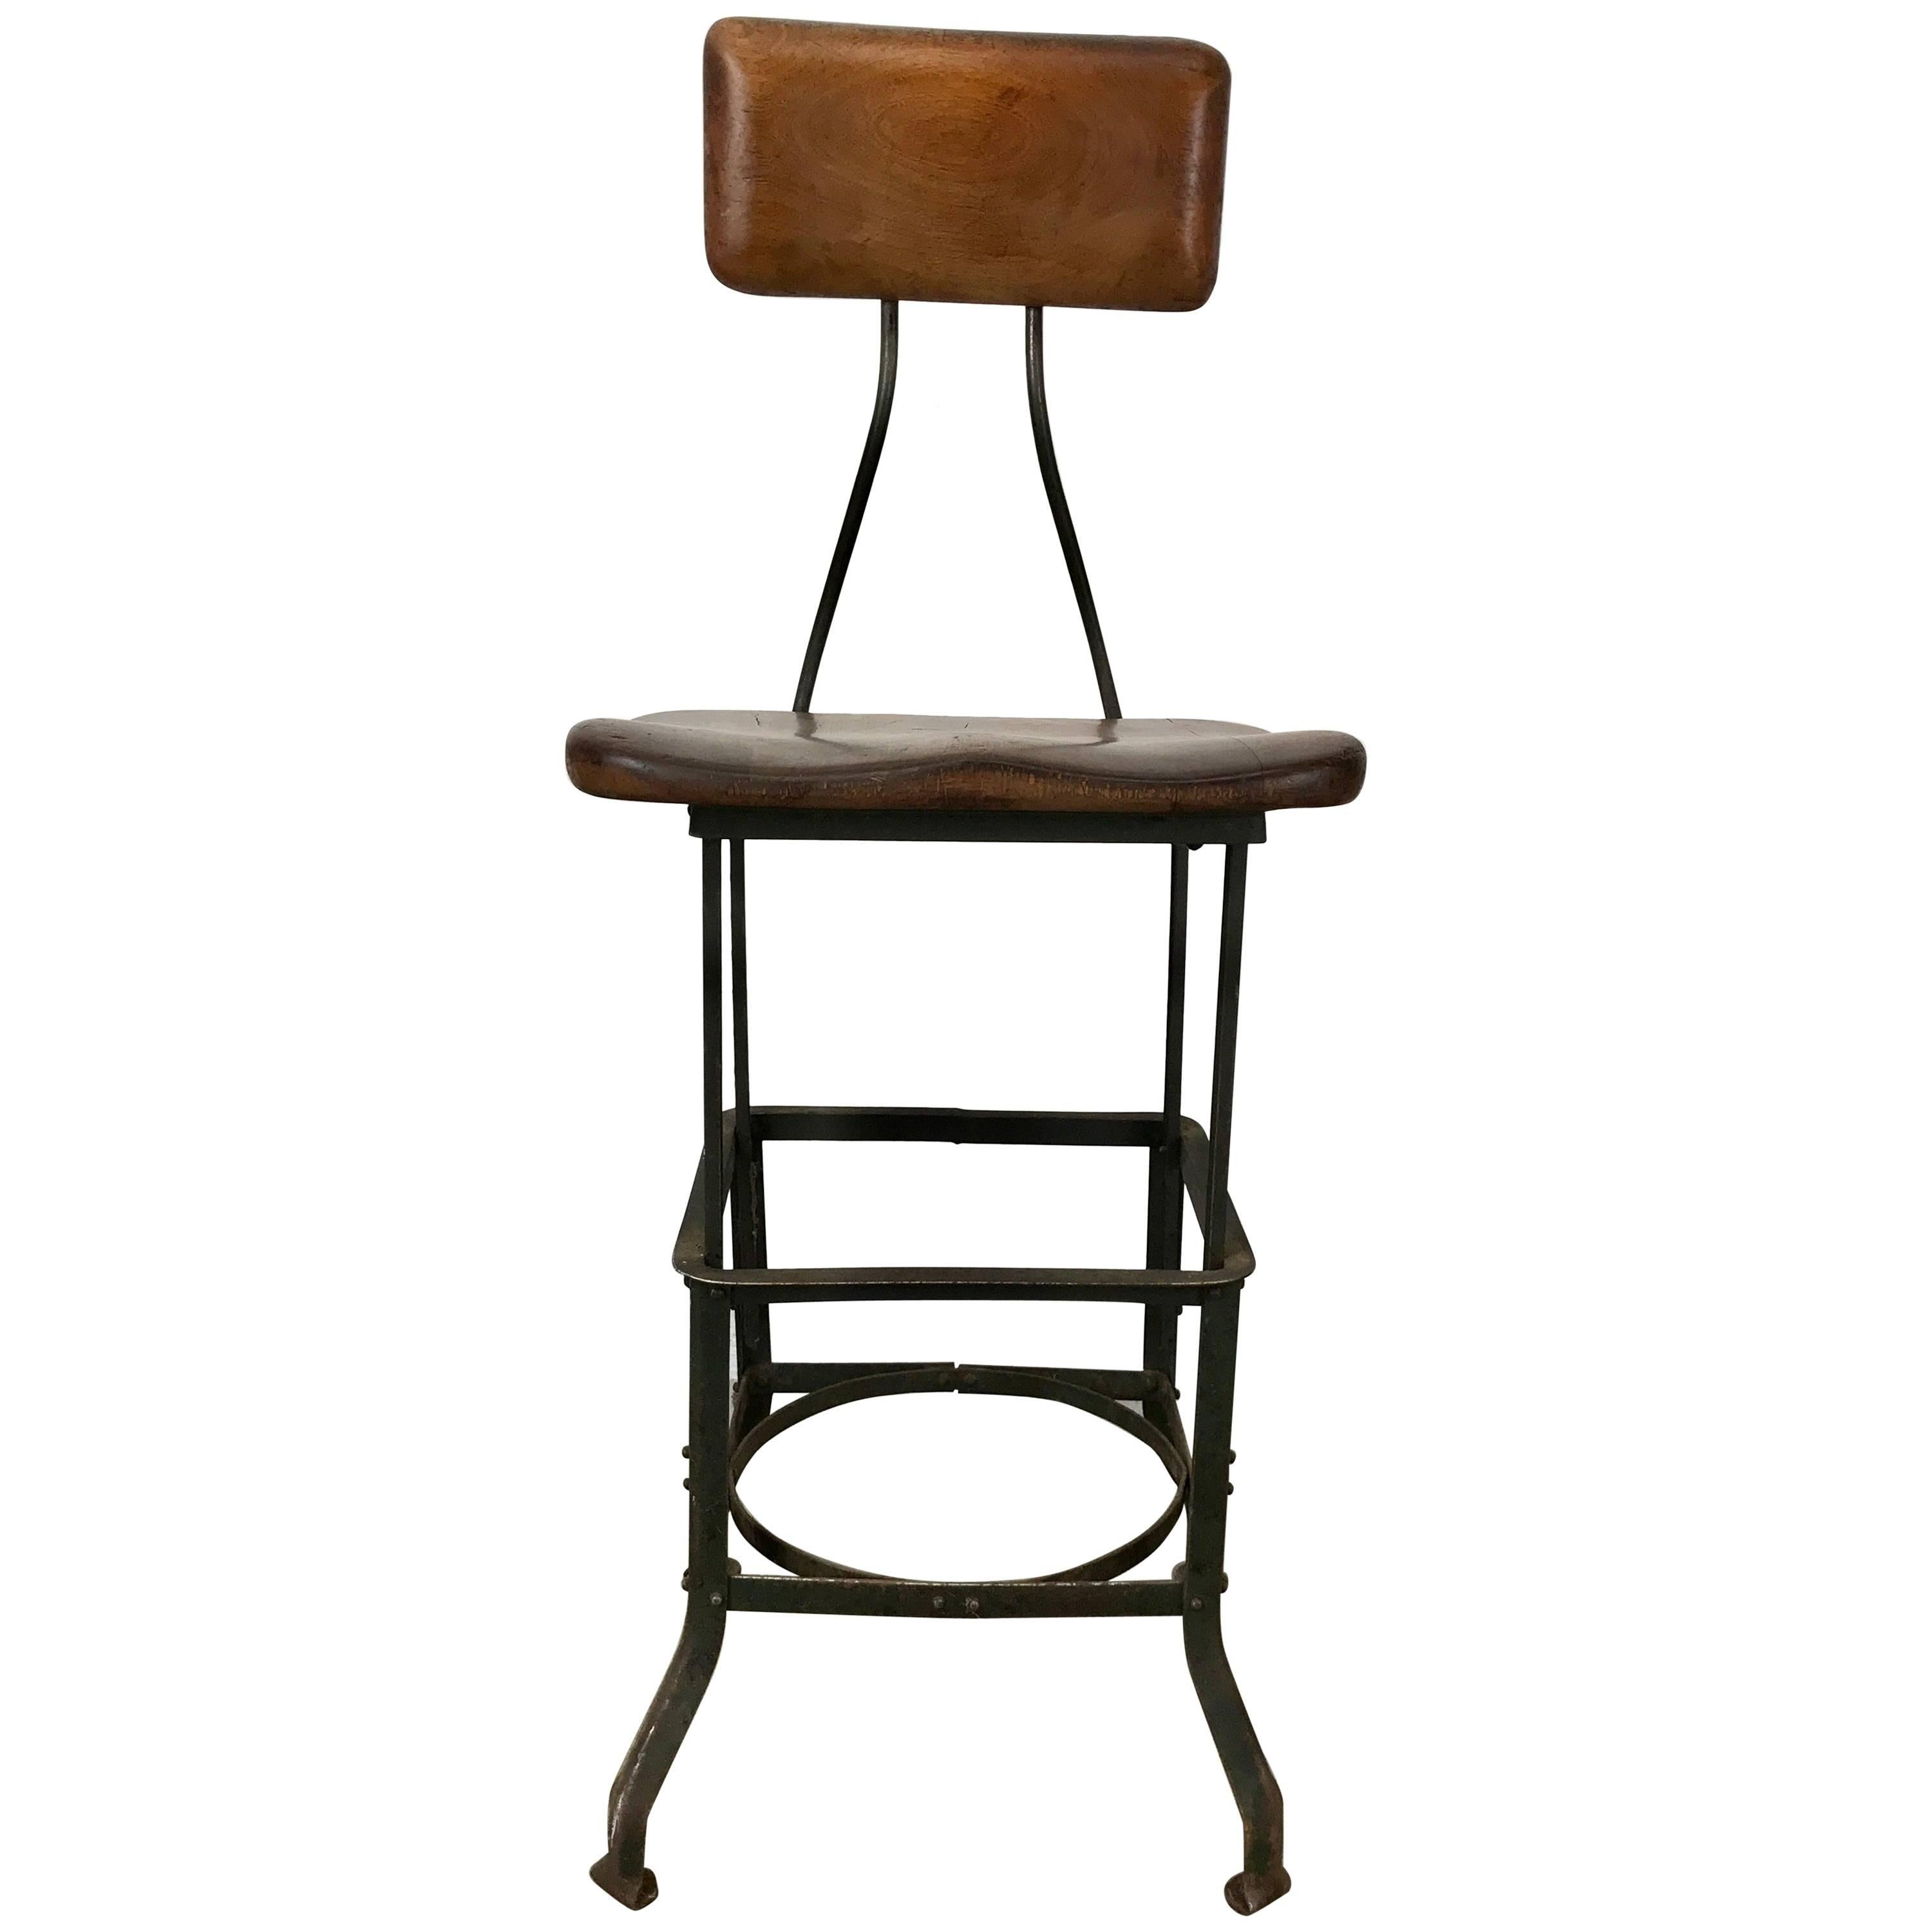 Superior Early Adjustable Industrial Machinist Stool, Manufactured By Toledo For  Sale At 1stdibs